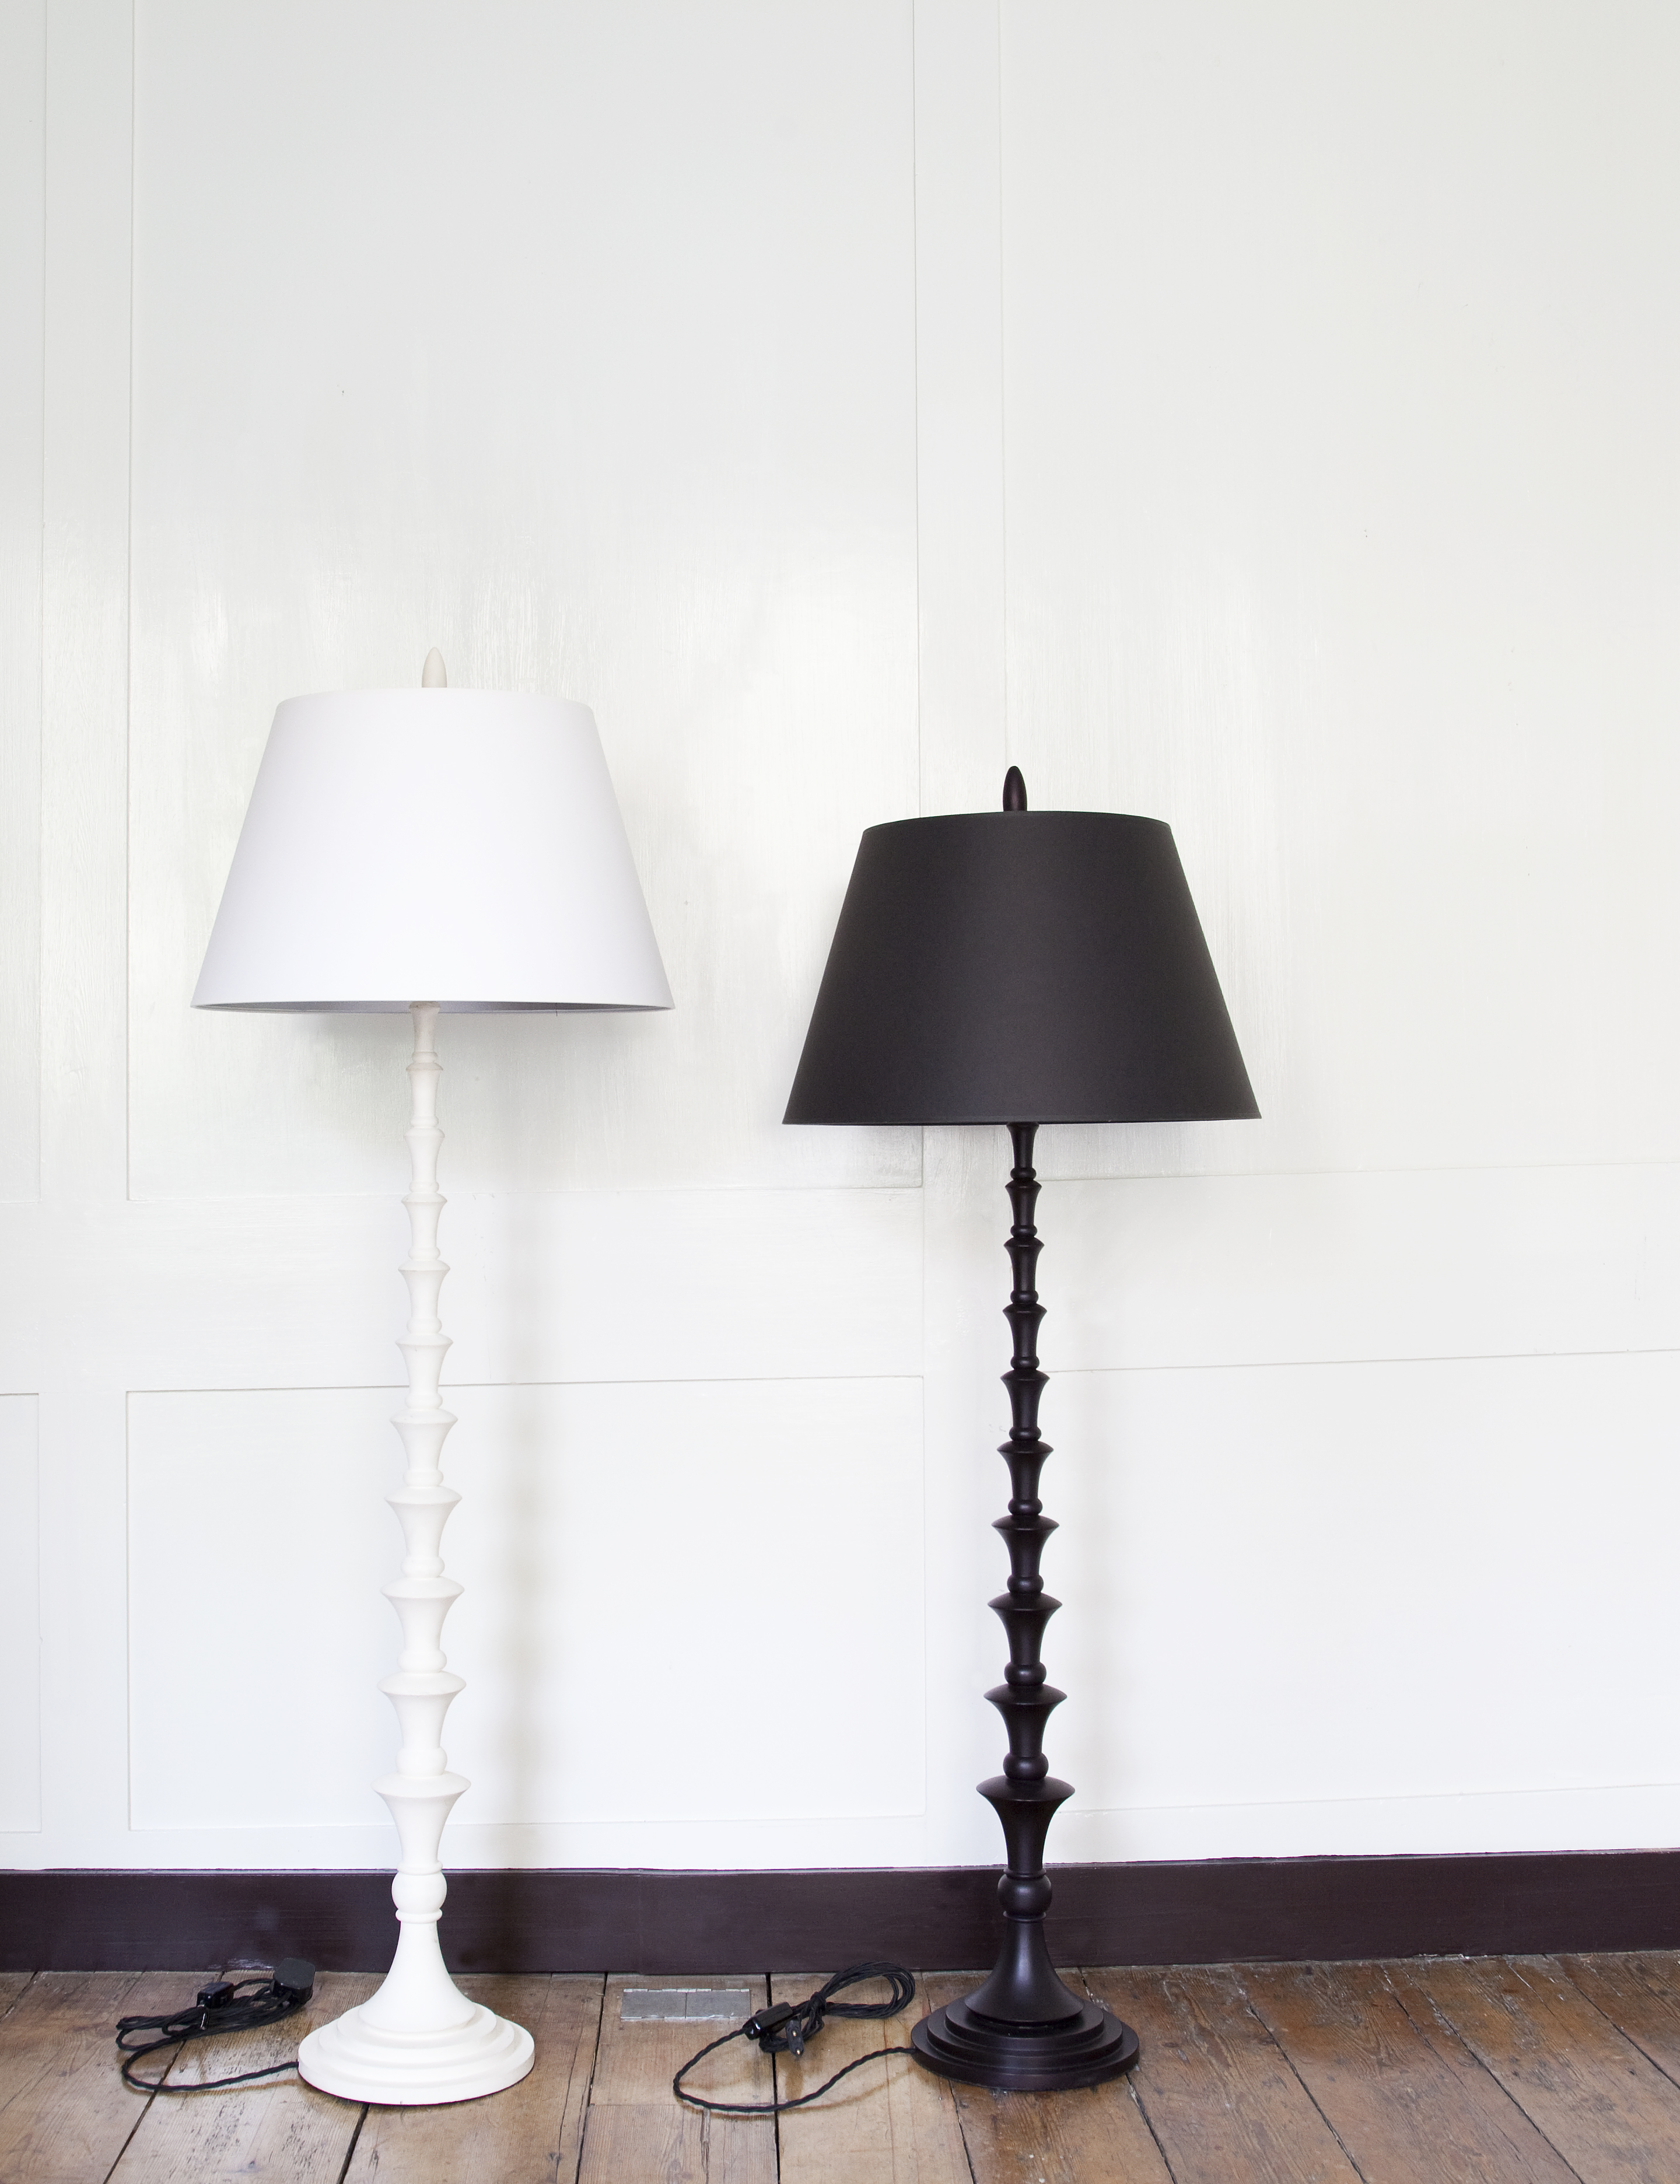 An image from Marianna Kennedy's Tulip Lamp